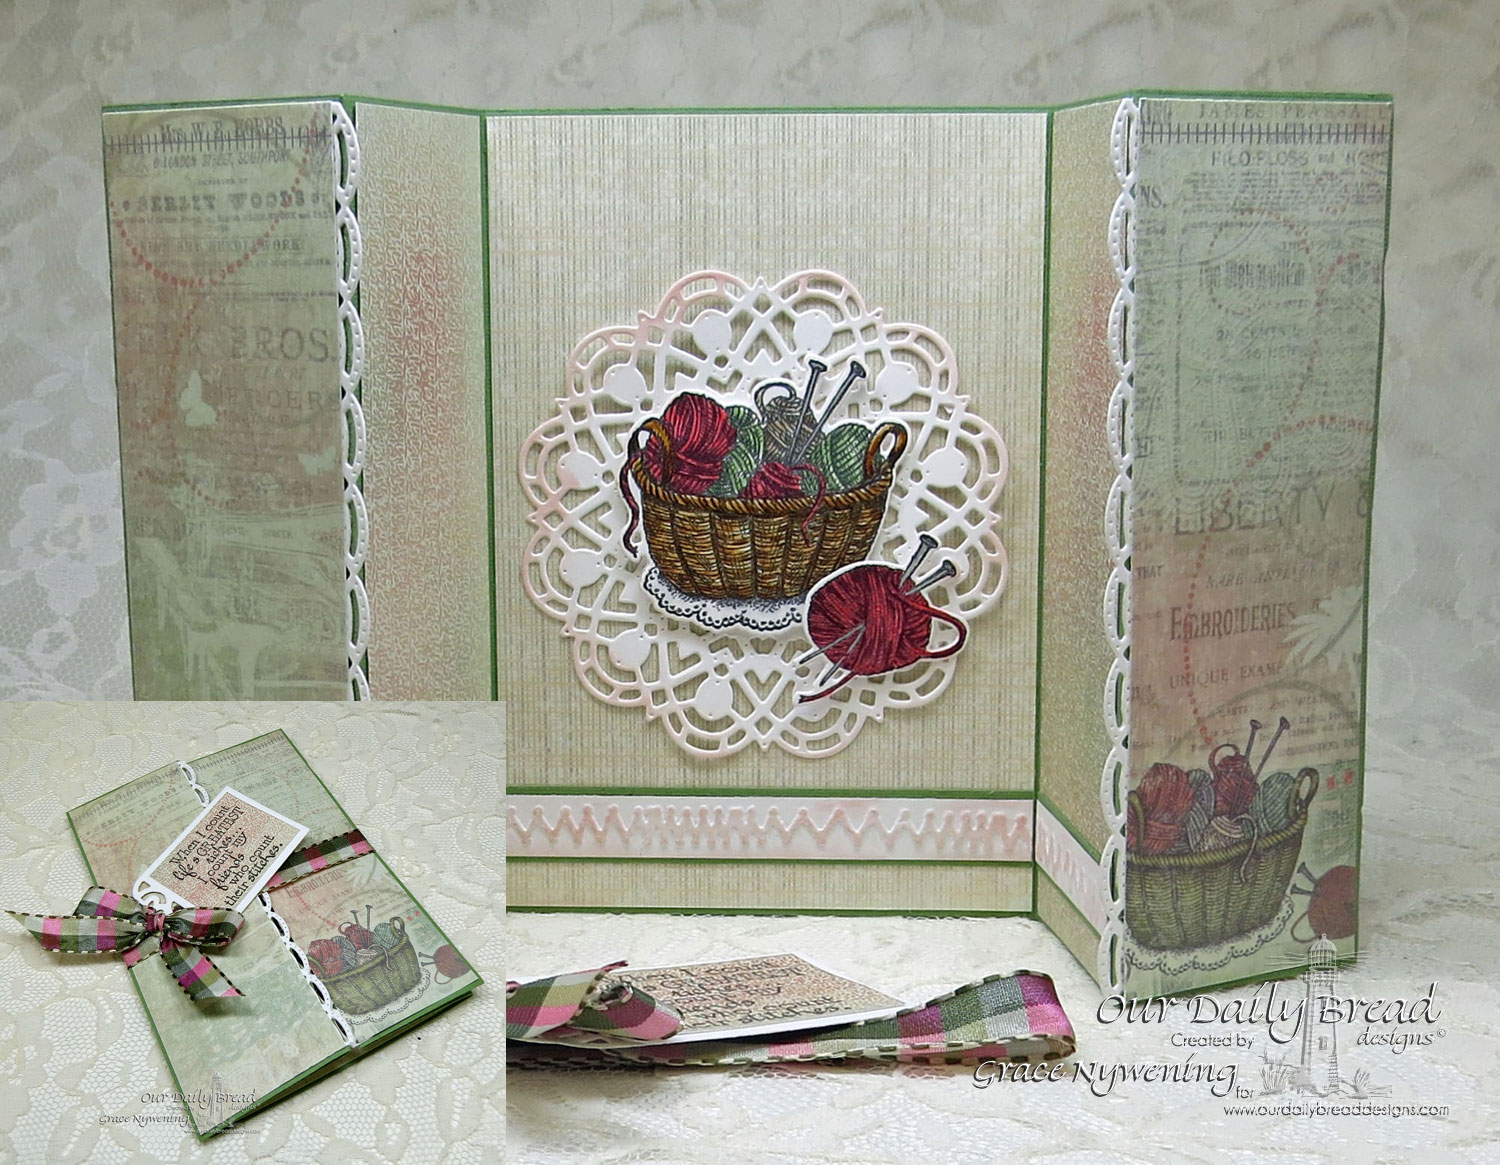 Stamps - Our Daily Bread Designs Stitches, Hand Knit, ODBD Custom Beautiful Borders Dies, ODBD Custom Recipe Card and Tags Dies, ODBD Custom  Doily Die, ODBD Soulful Stitches Paper Collection